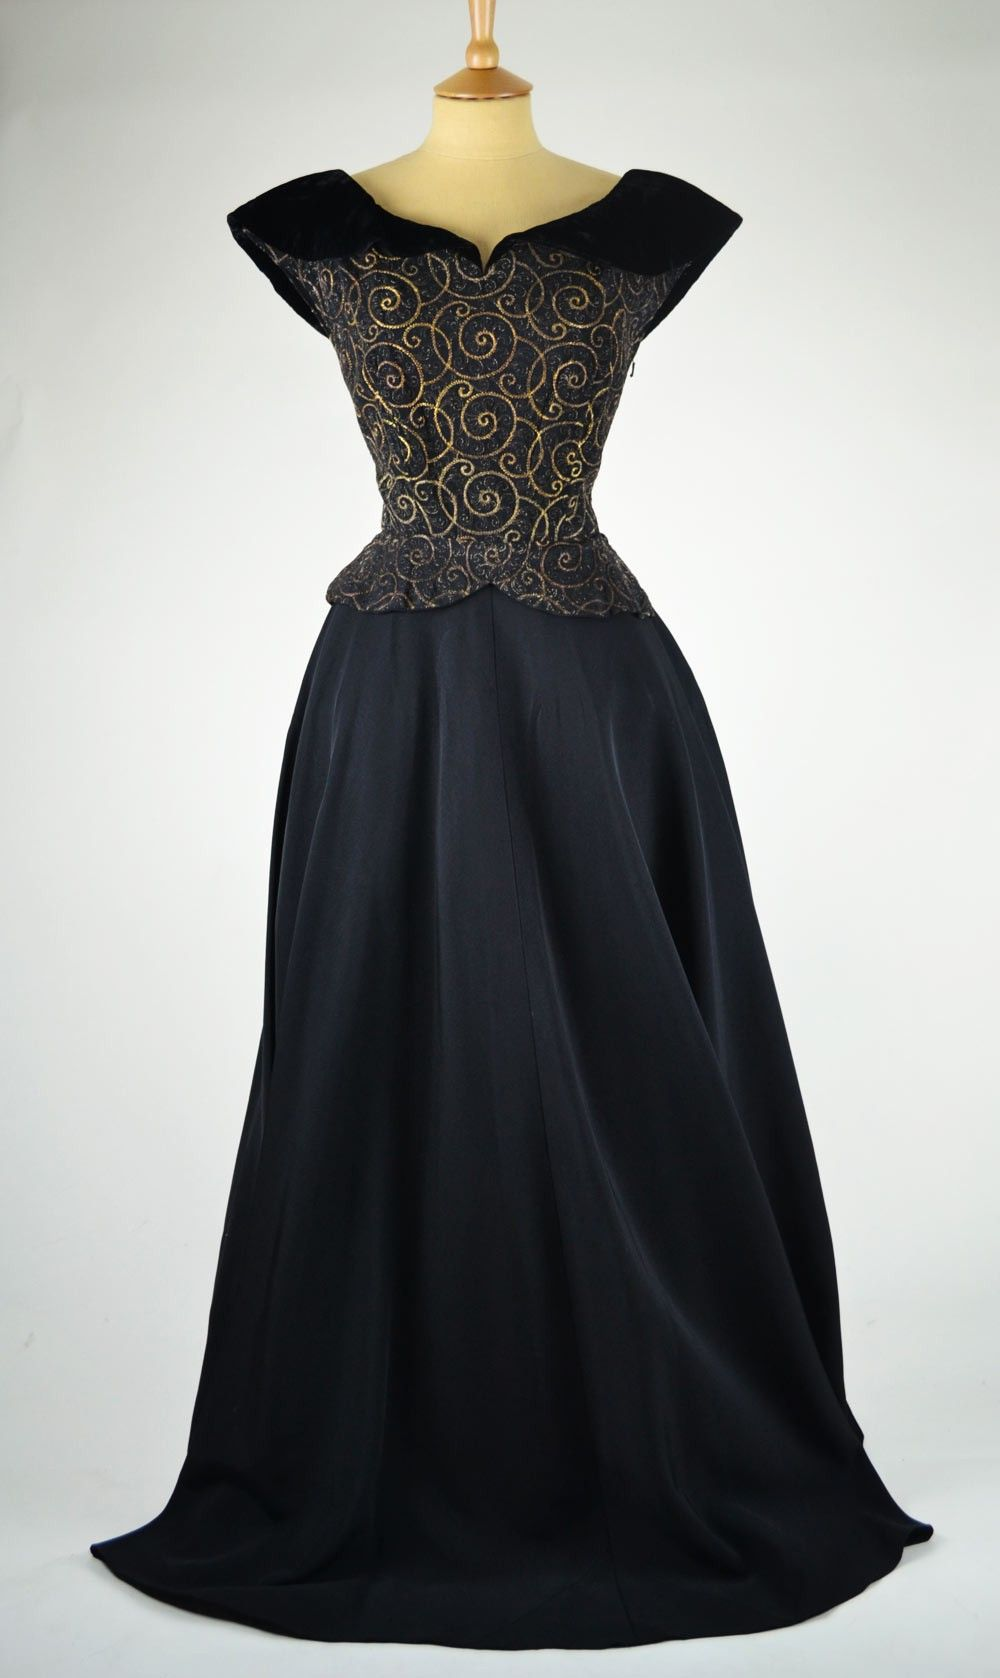 1940s Evening Dresses 1940s vintage evening dress | Vintage ...